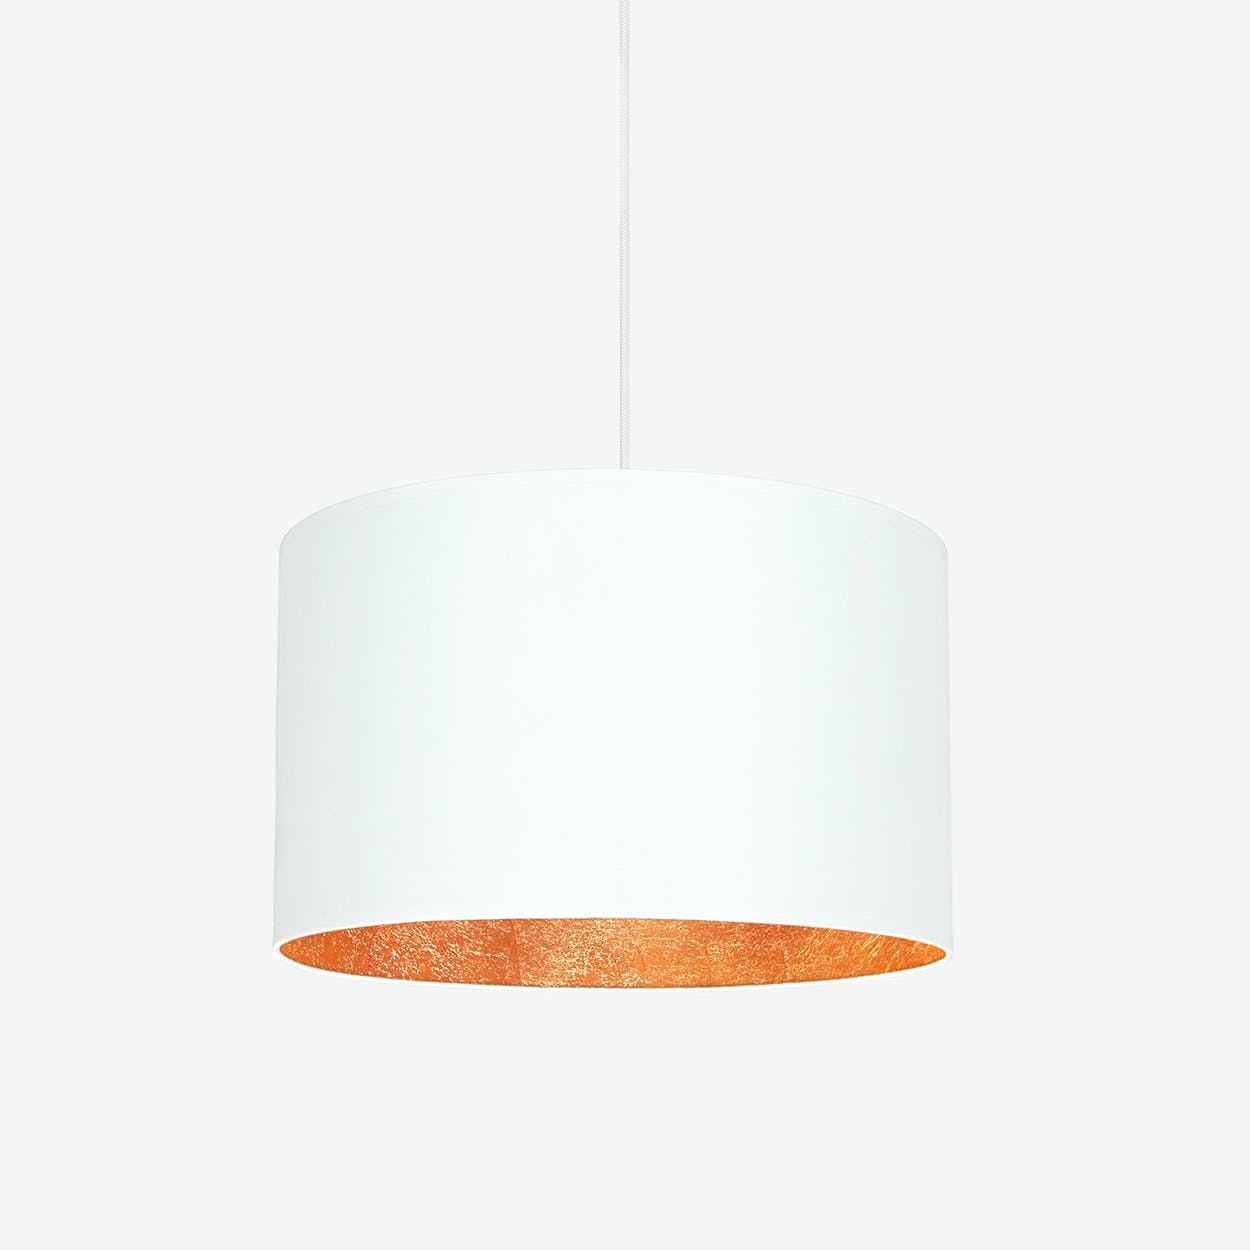 MIKA Large Single Pendant Light in White with Copper Leaf